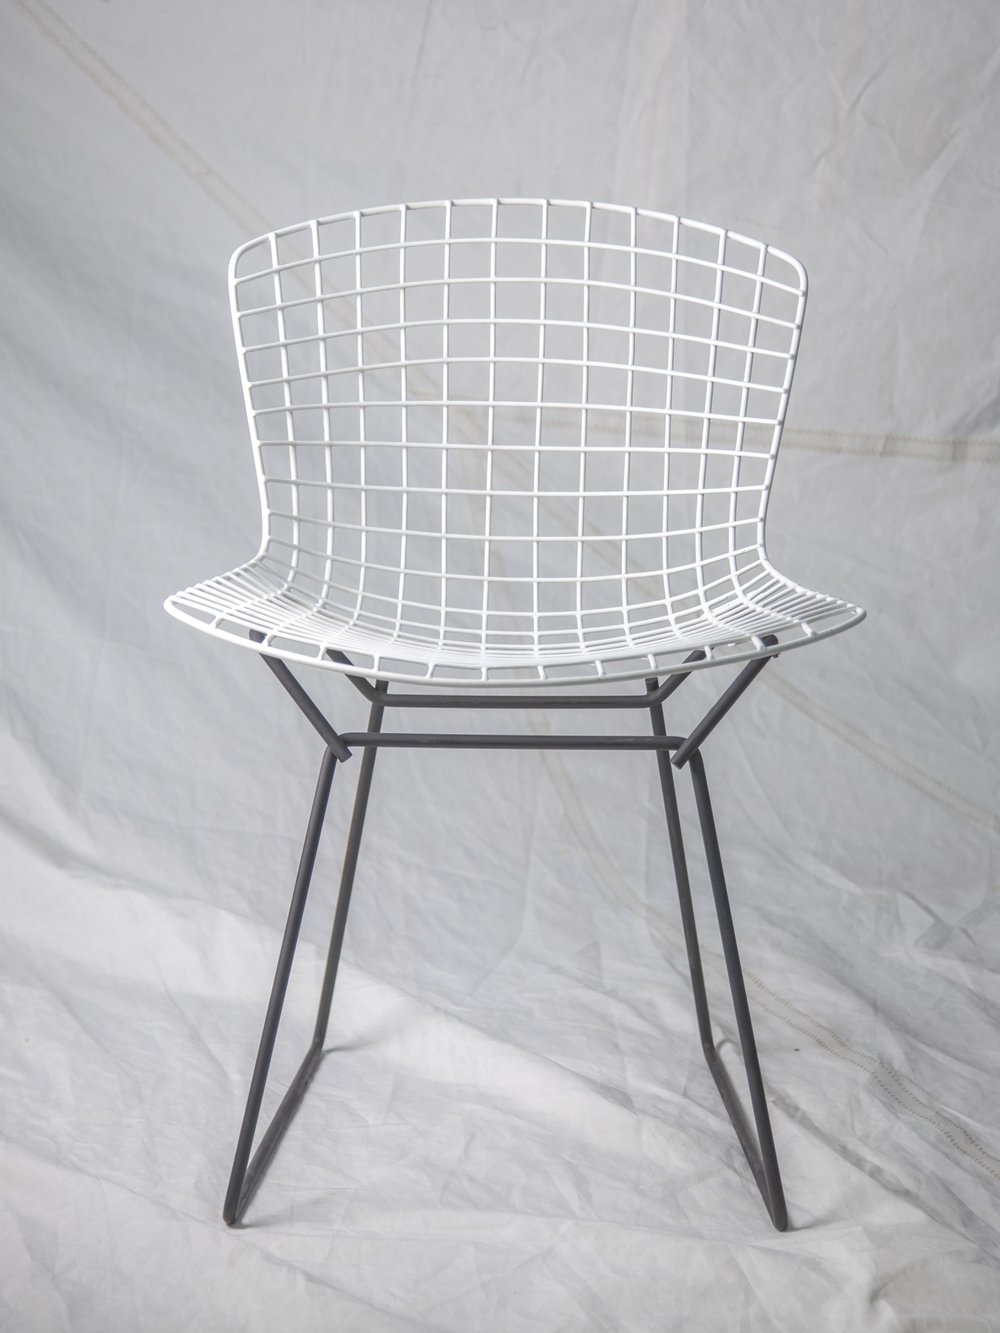 "CH065 - CH068 Bertoia Vintage side chair 29"" H x 21"" W x 22"" D $150/week each Set of 4"